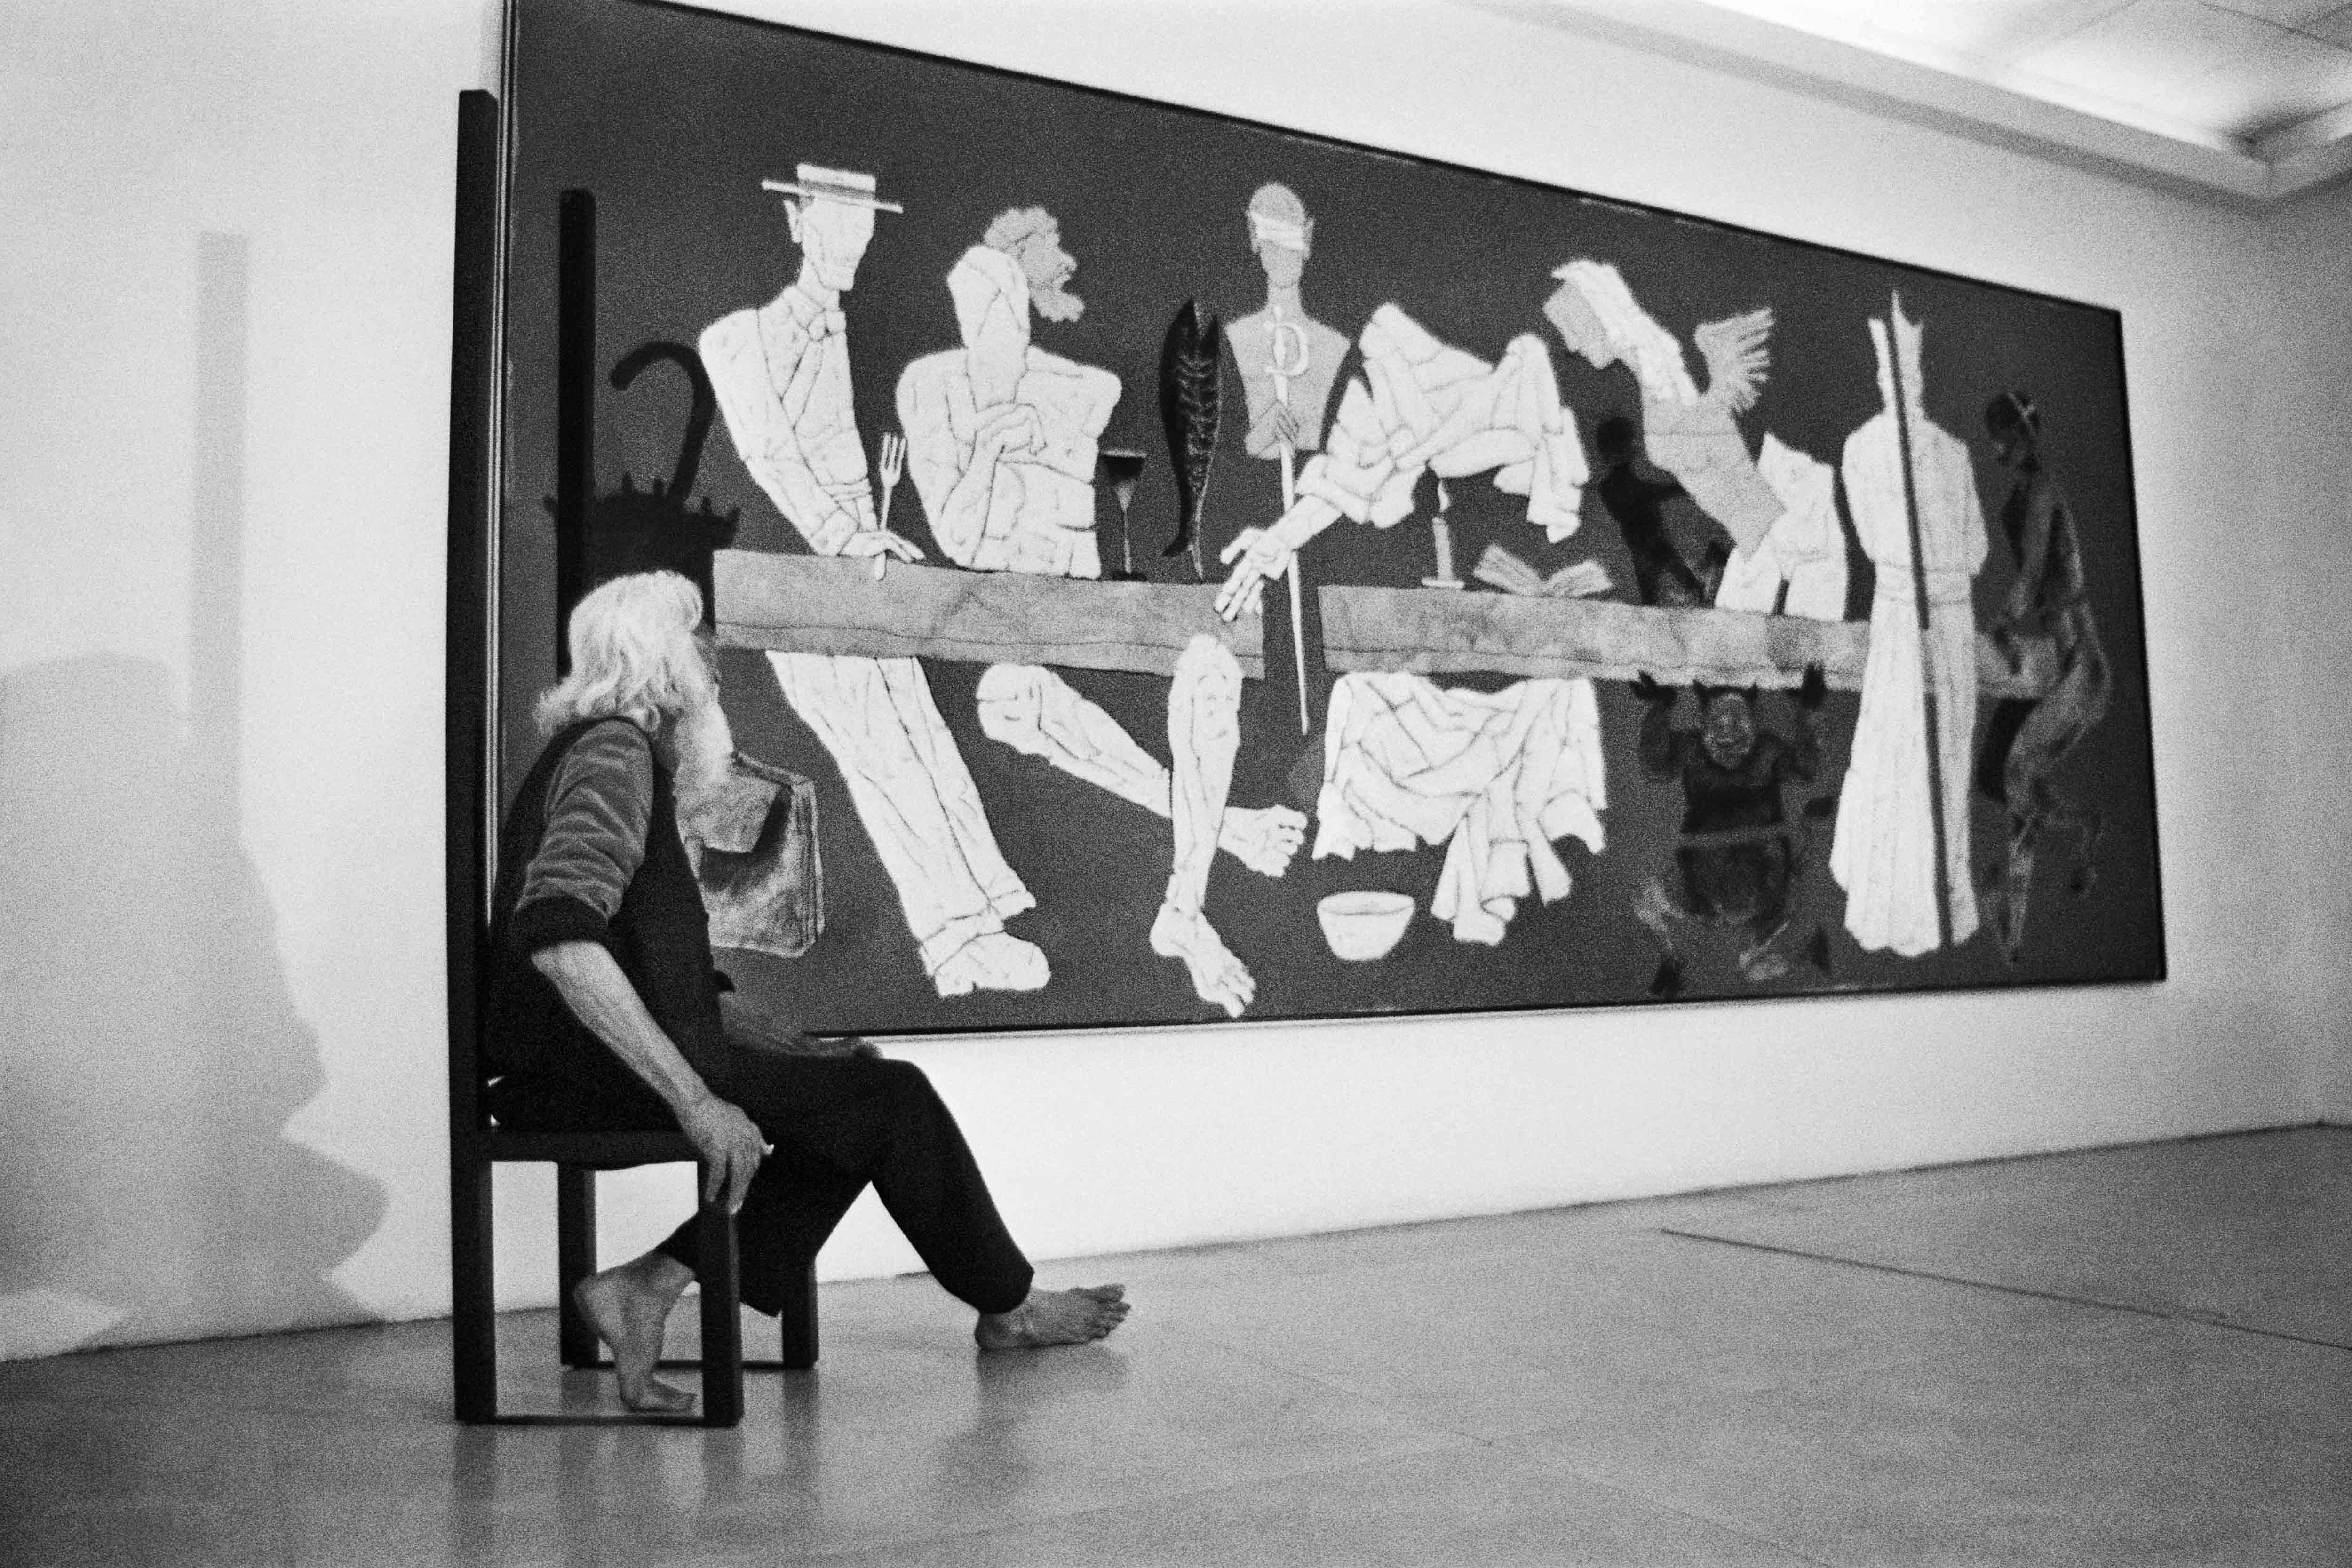 MF Husain in an exhibition space. Image courtesy: Parthiv Shah.